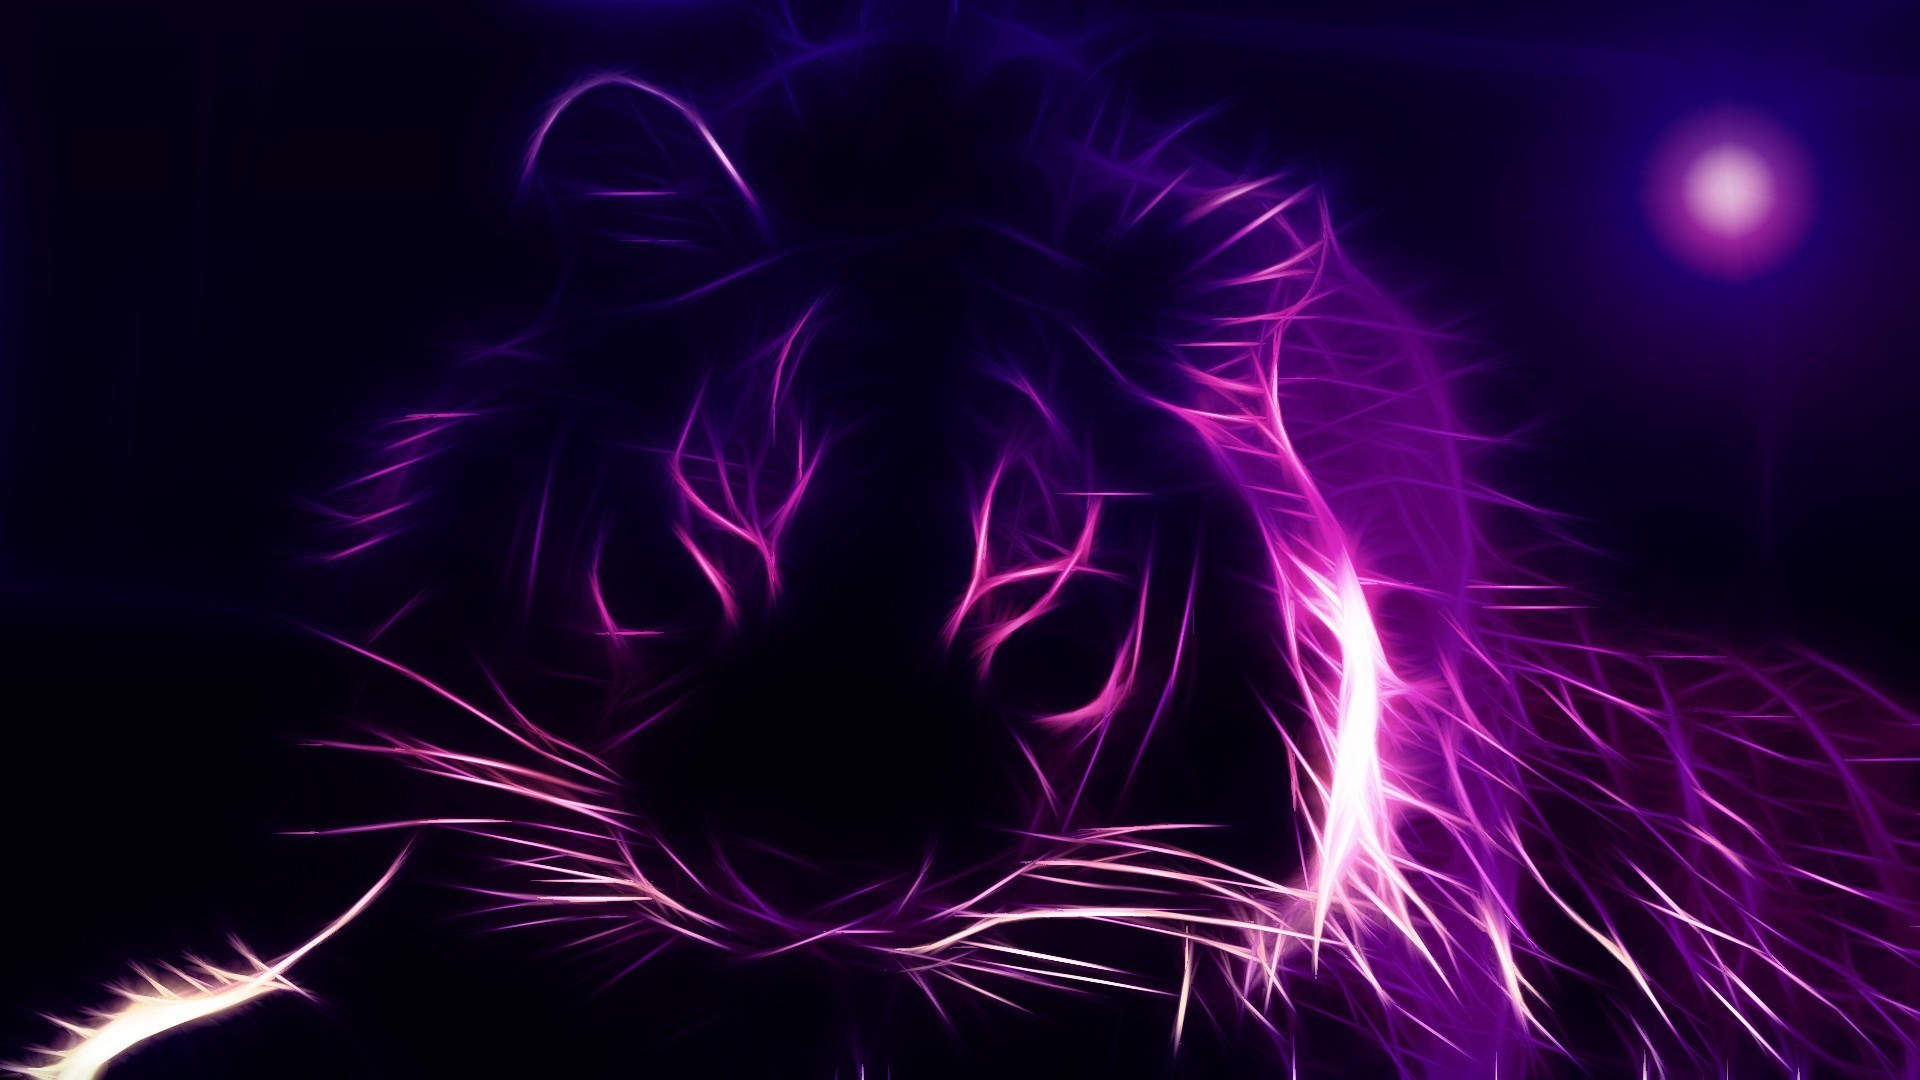 Neon flame energy abstract lightning motion bright design graphic HD  wallpaper. Android wallpapers for free.